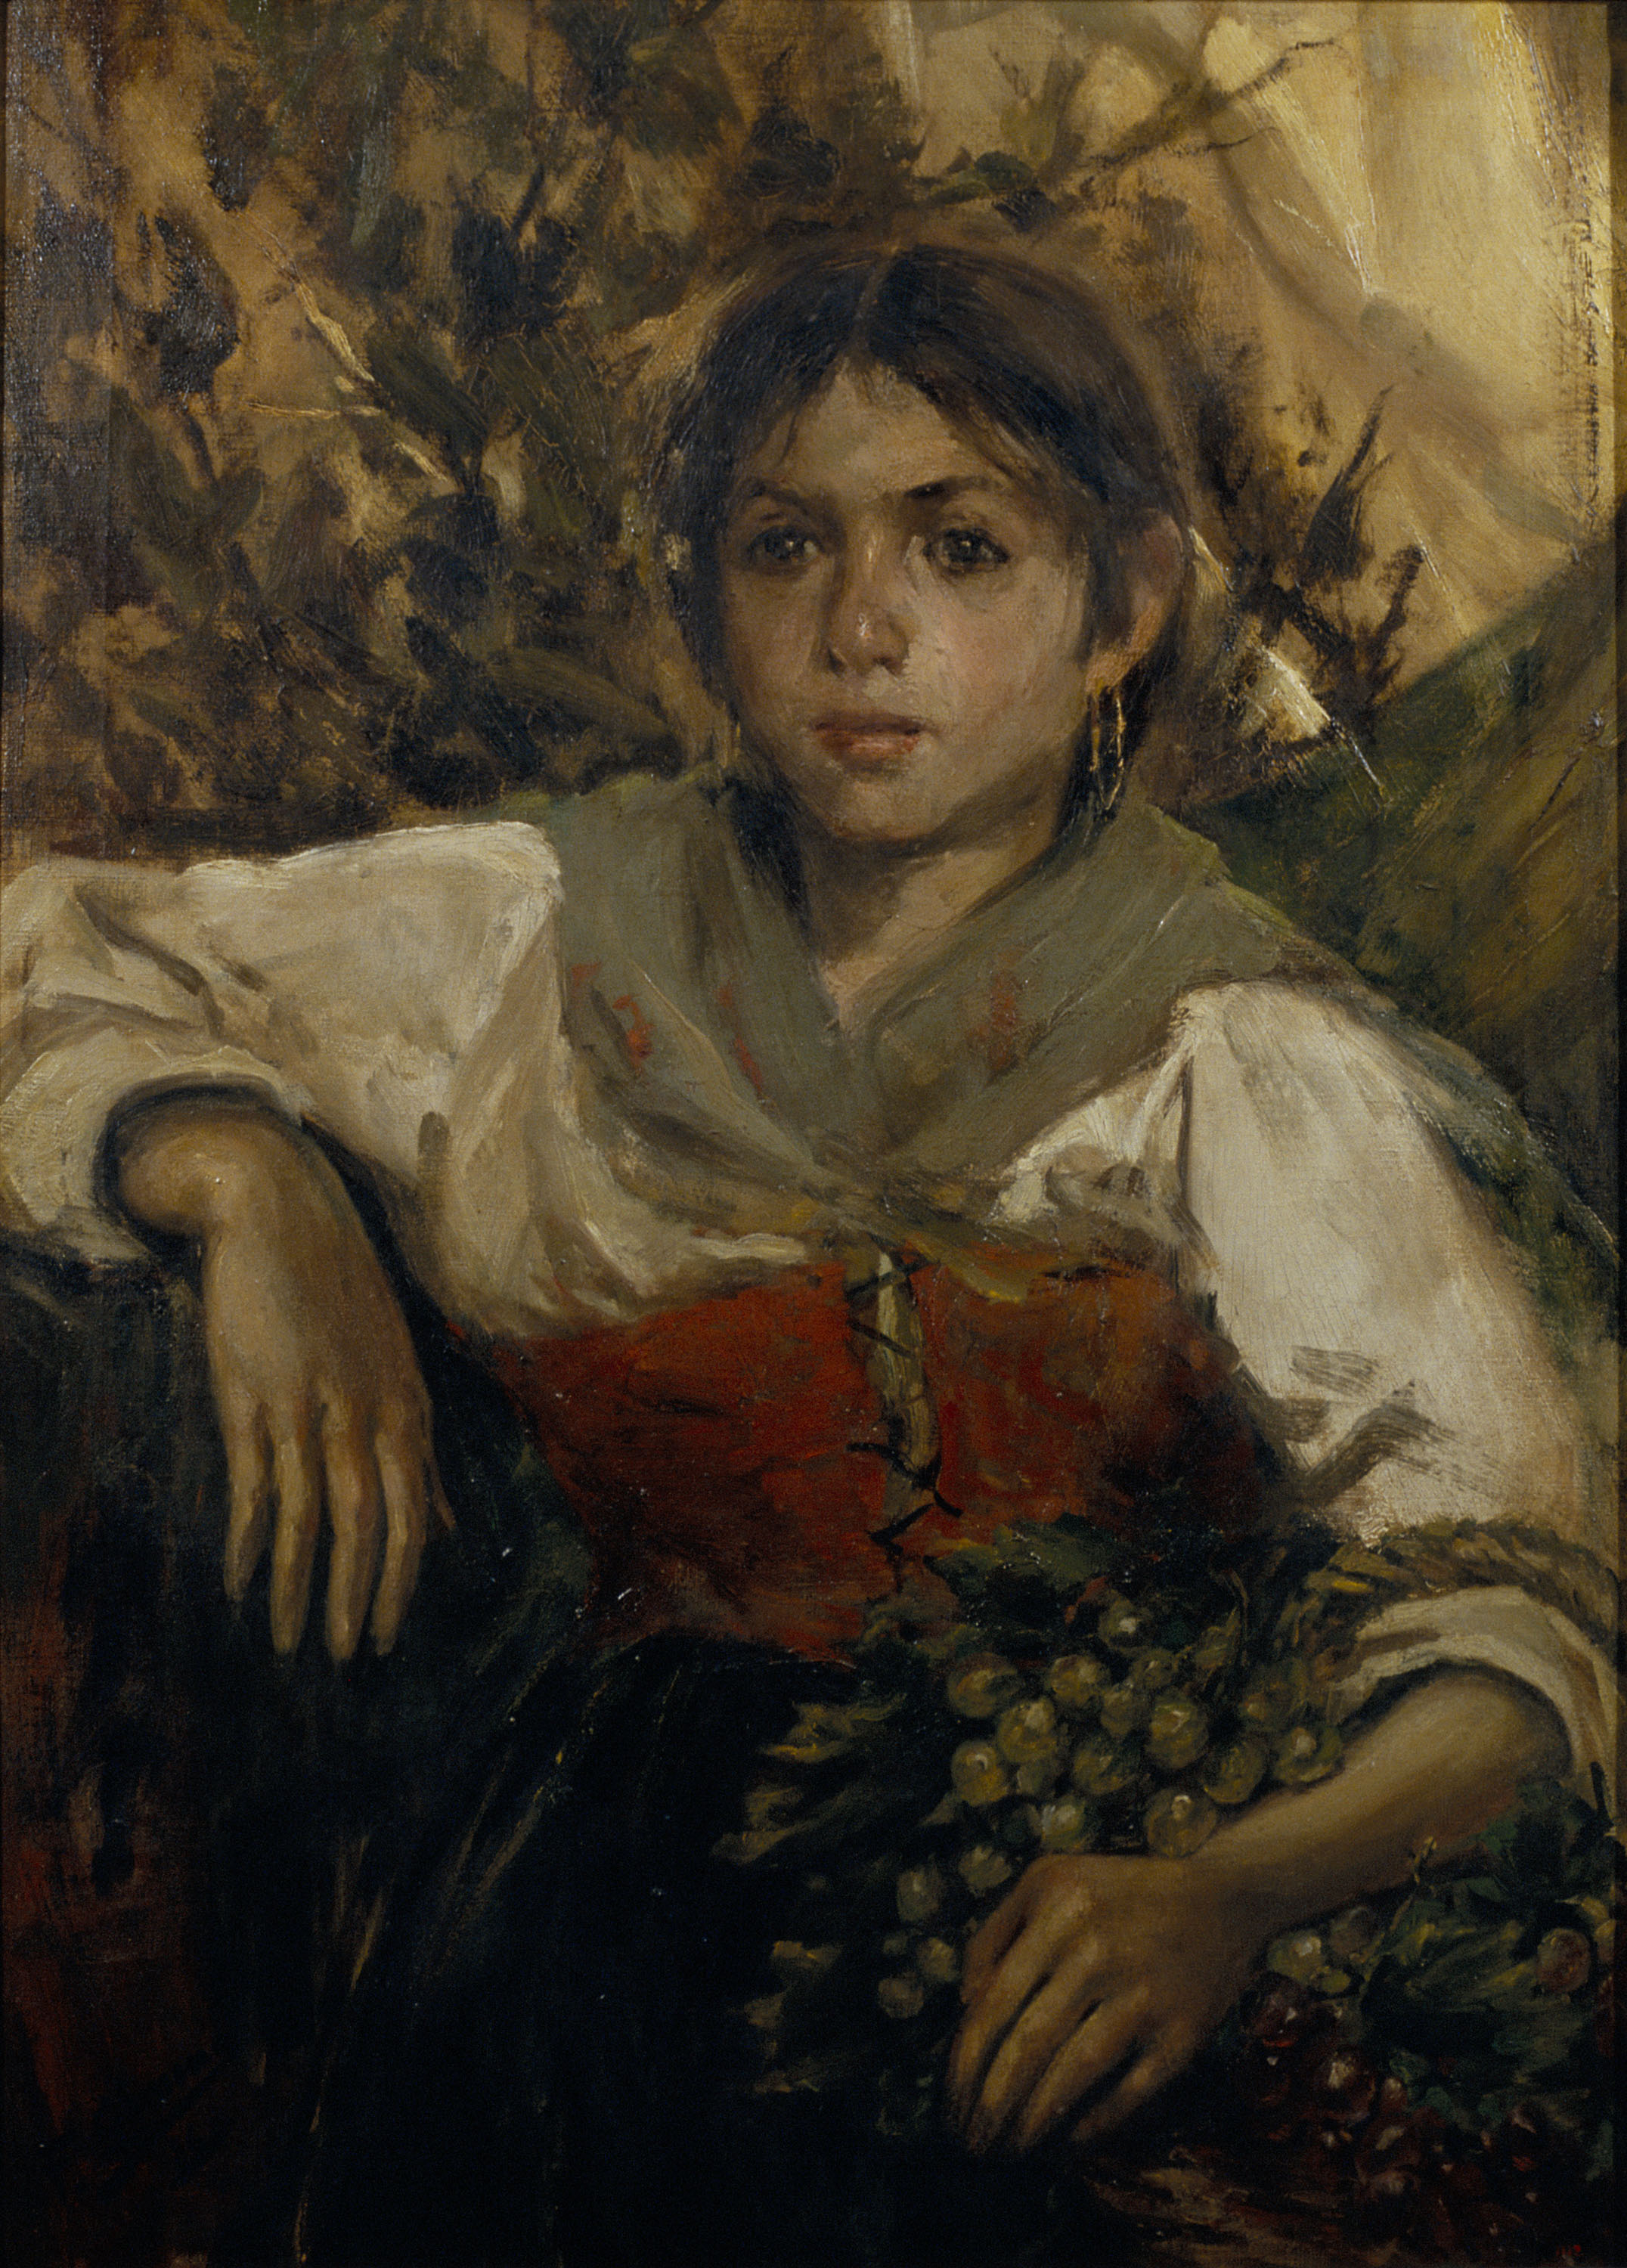 Francesc Gimeno - Peasant Girl - Madrid, 1886